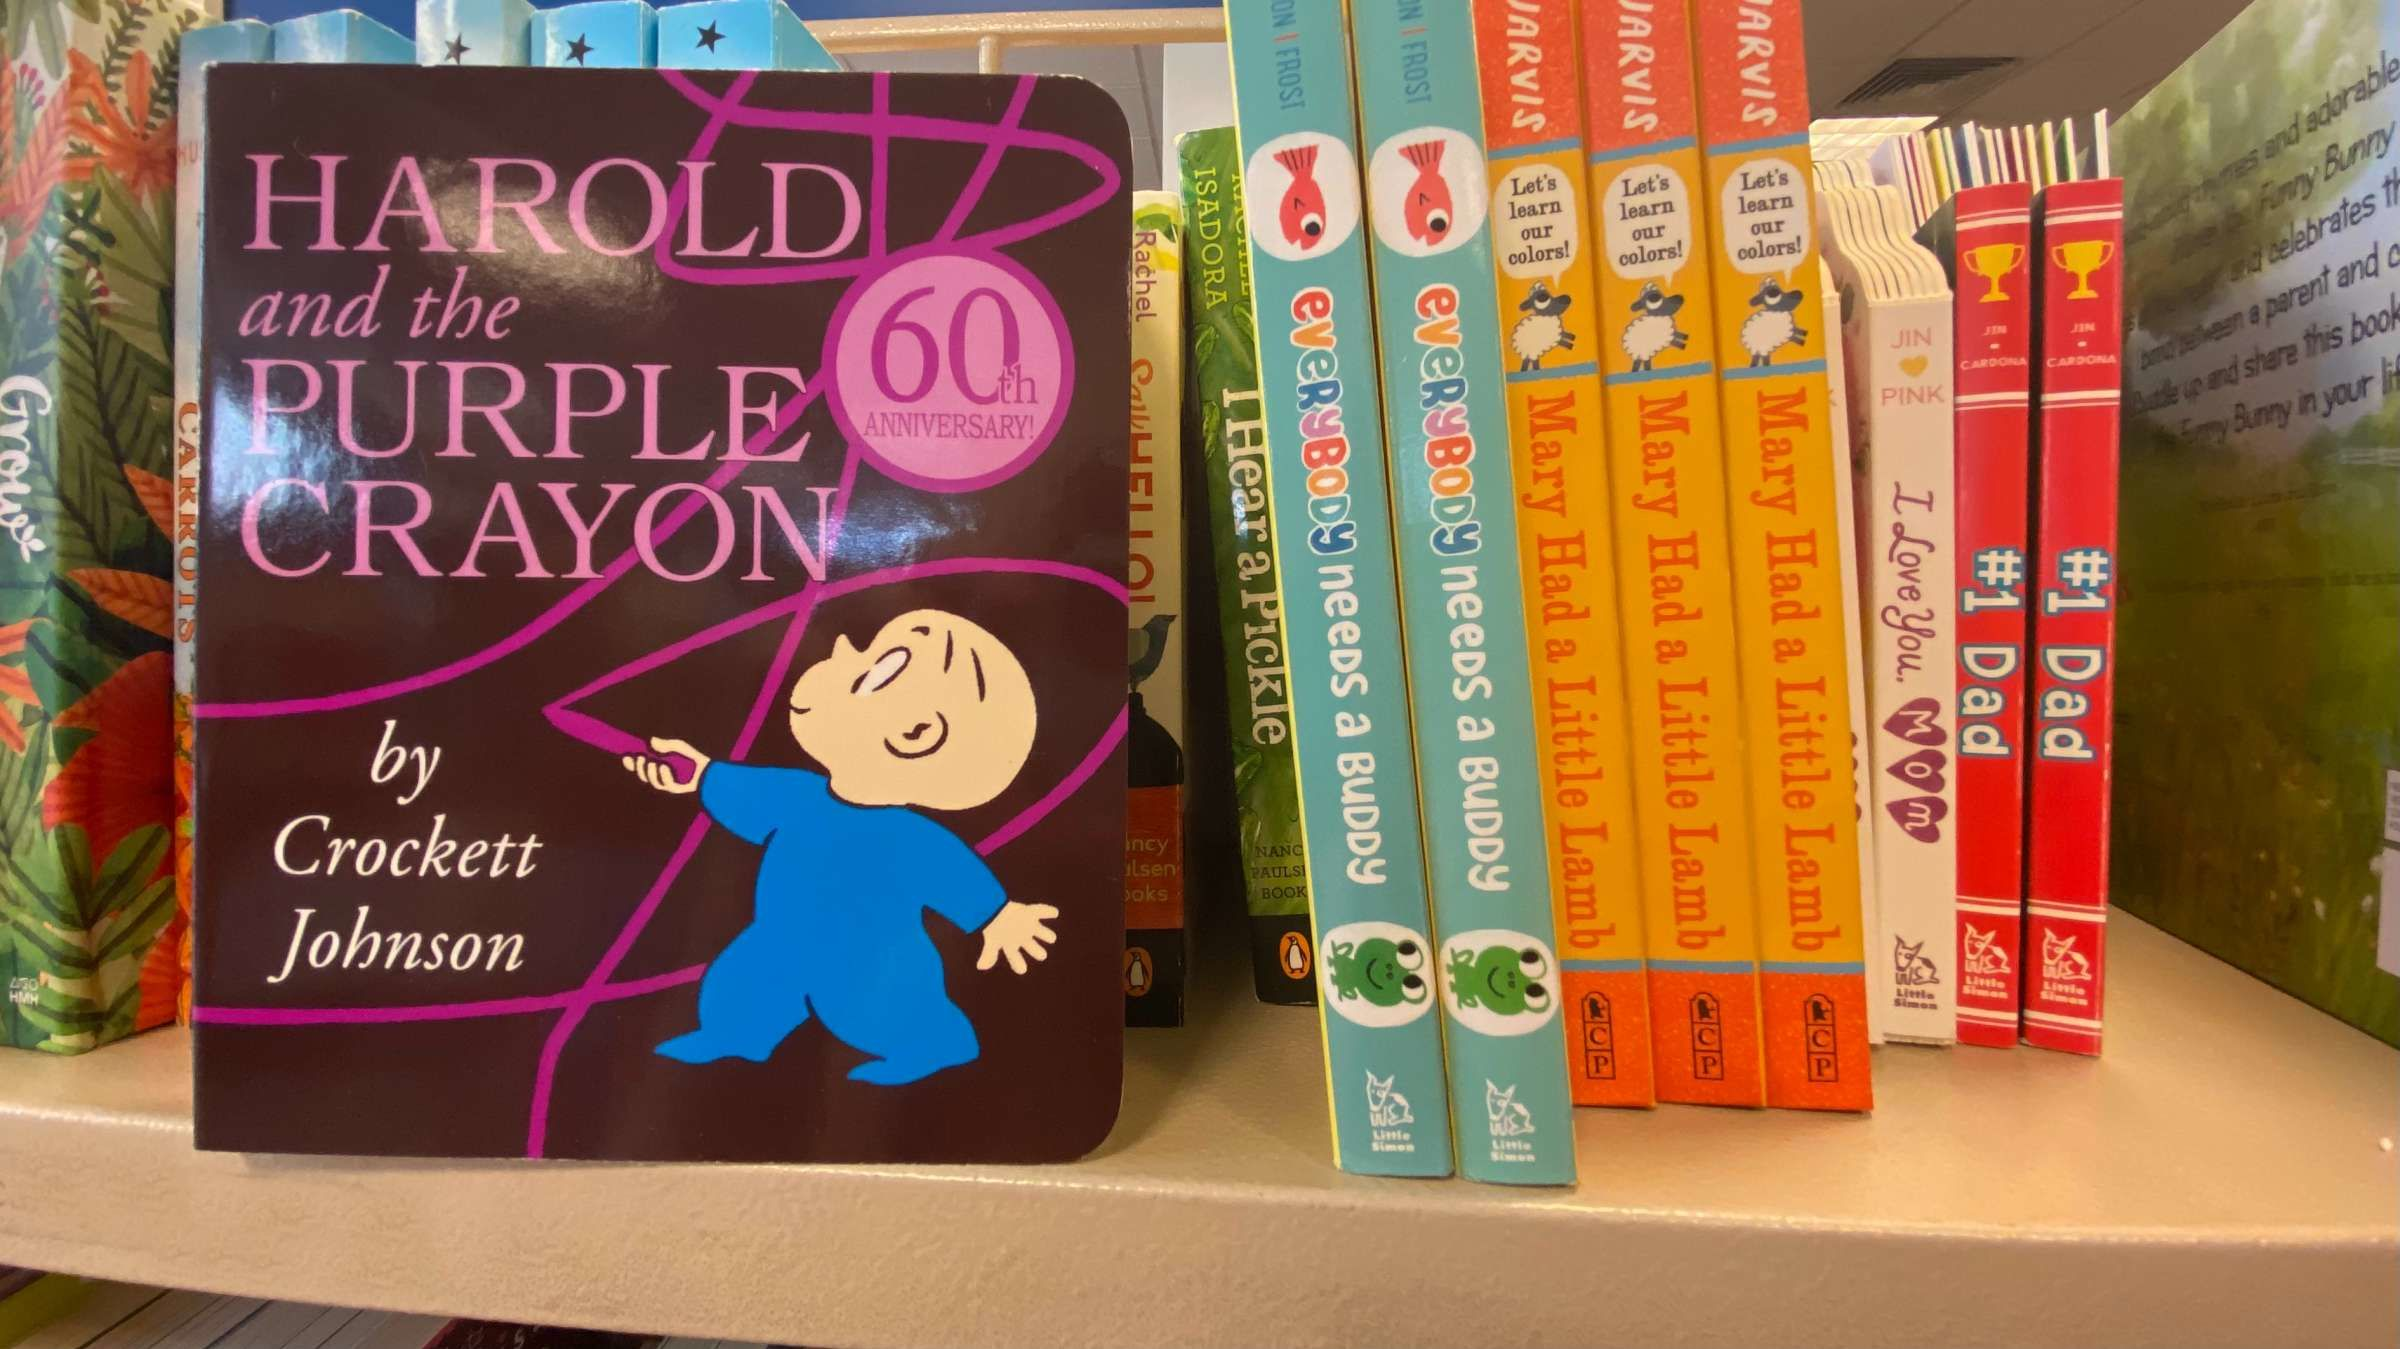 7 Facts About 'Harold and the Purple Crayon'